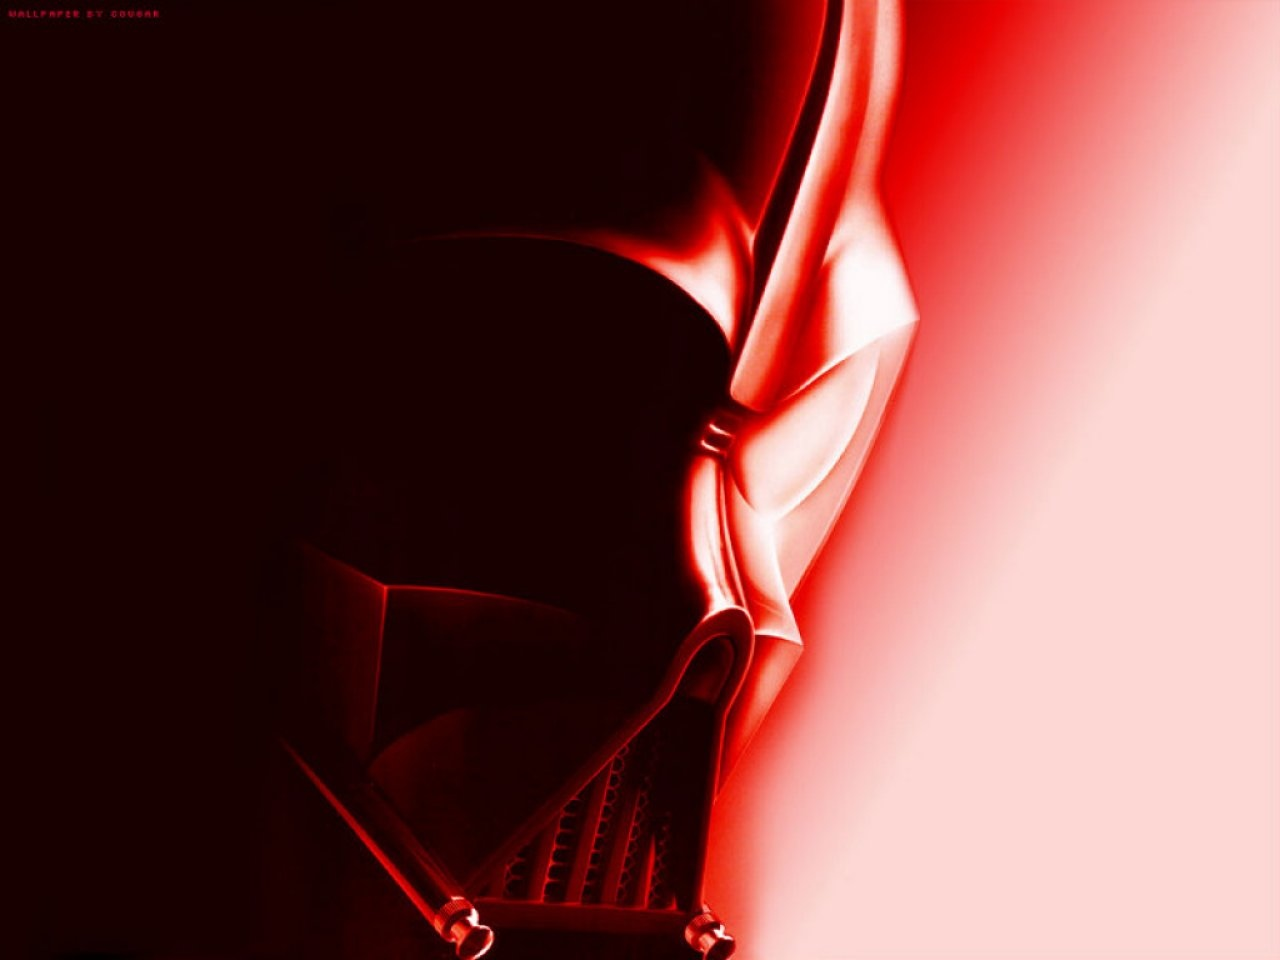 Star Wars Wallpaper 014